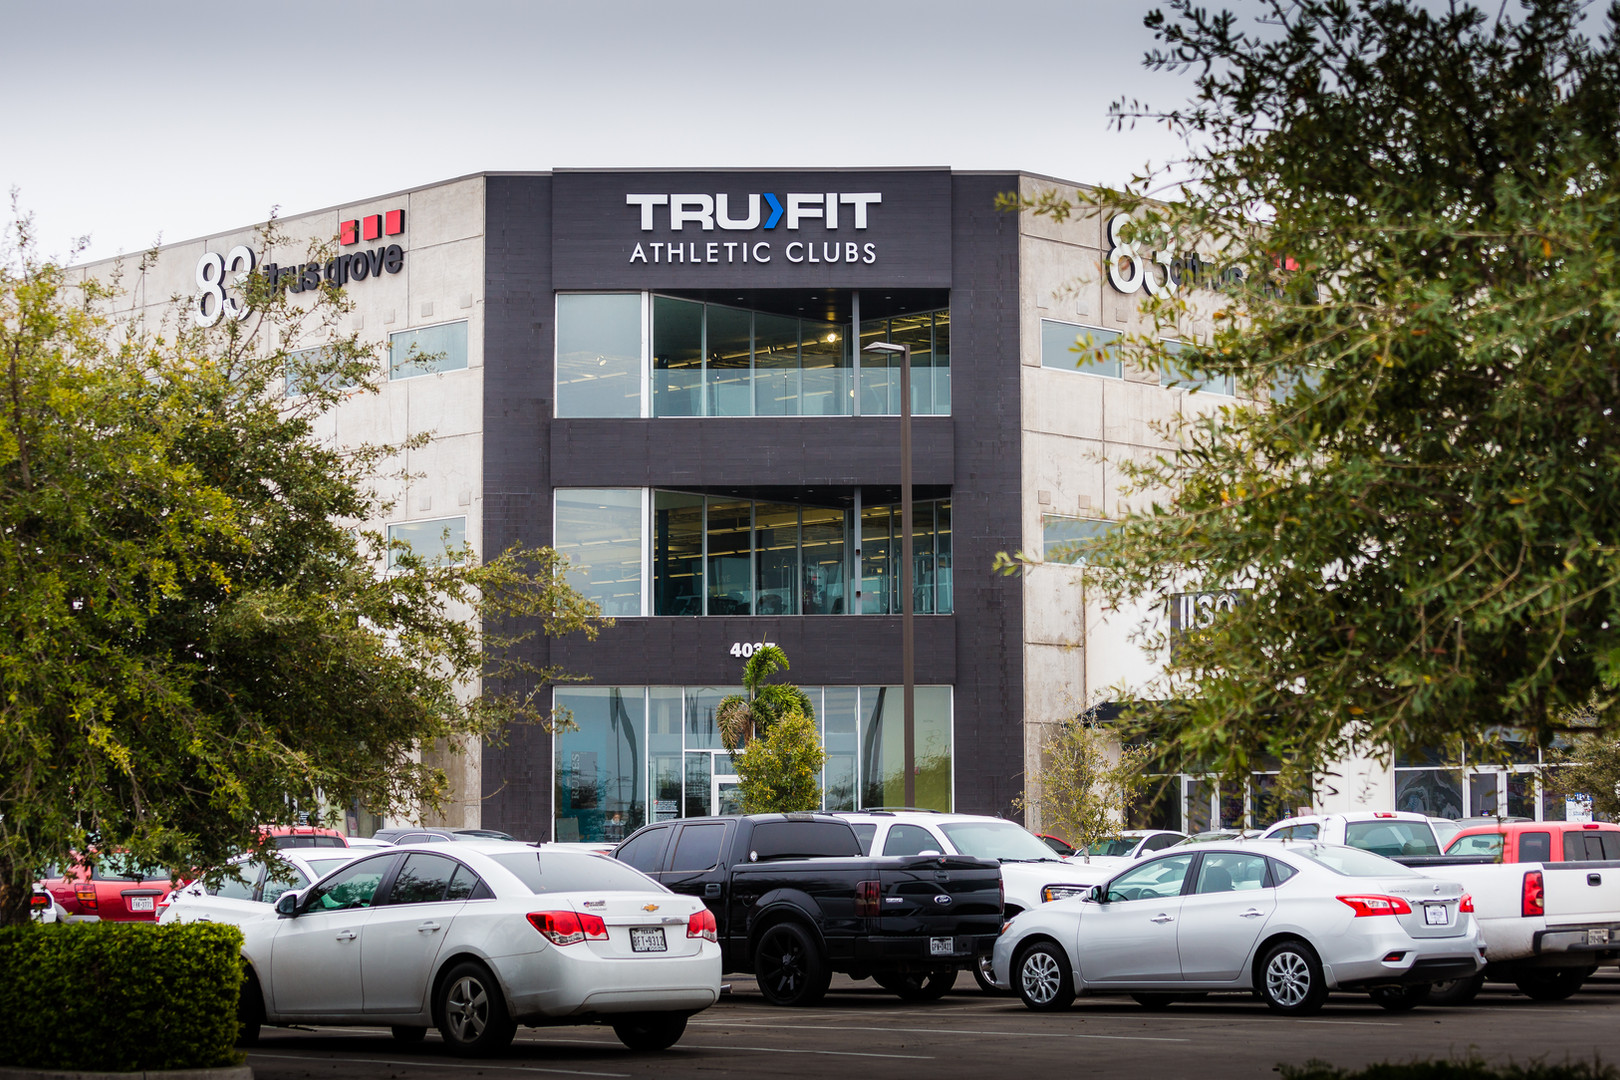 TruFit Athletic Club